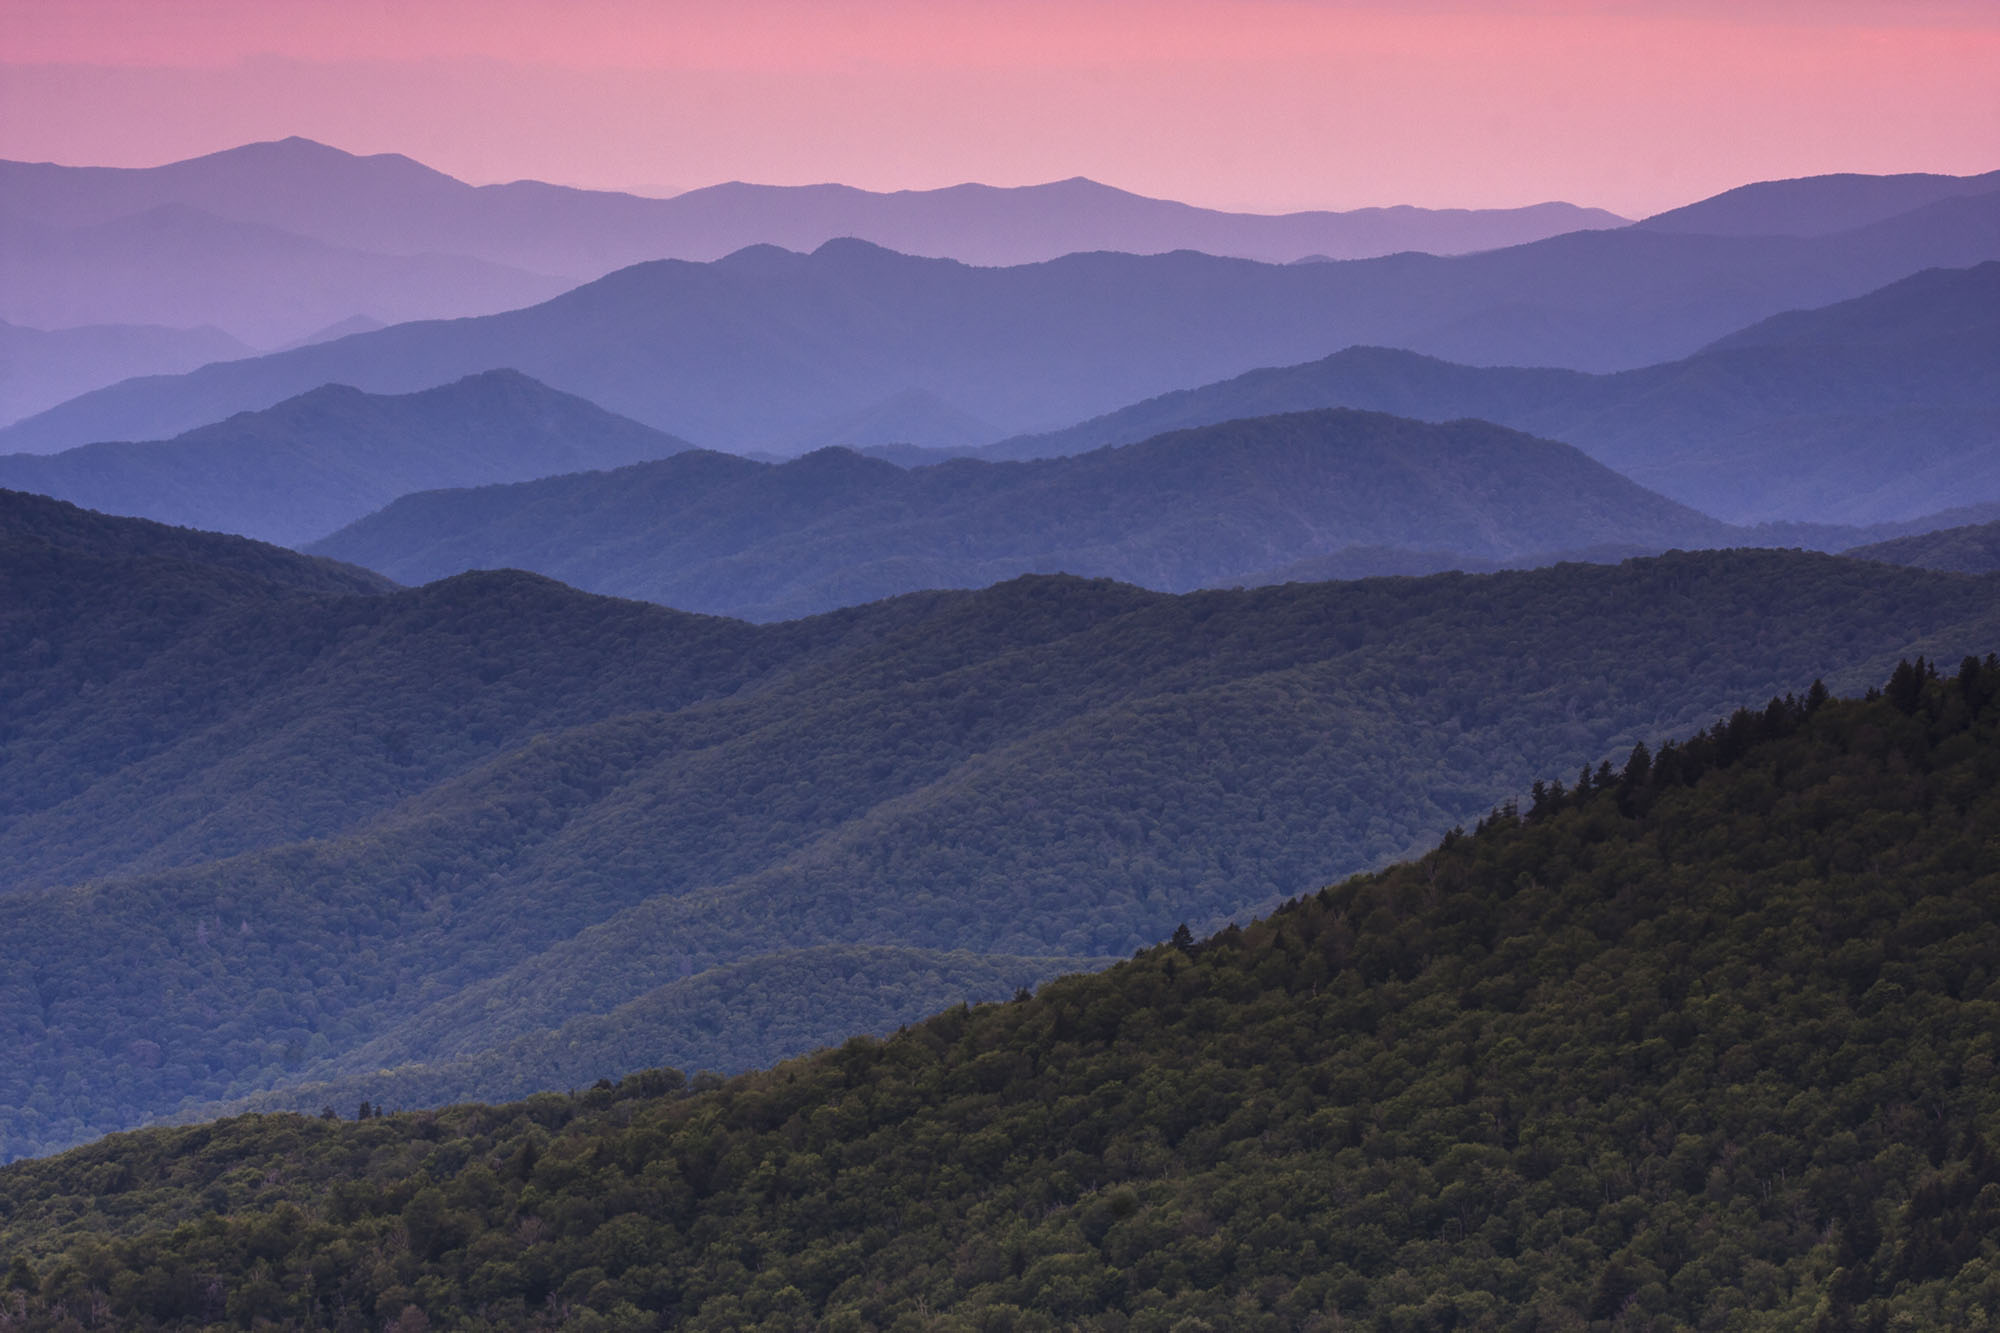 Great Smoky Mountains,USA,The Great Smoky Mountains in Tennessee at dusk.